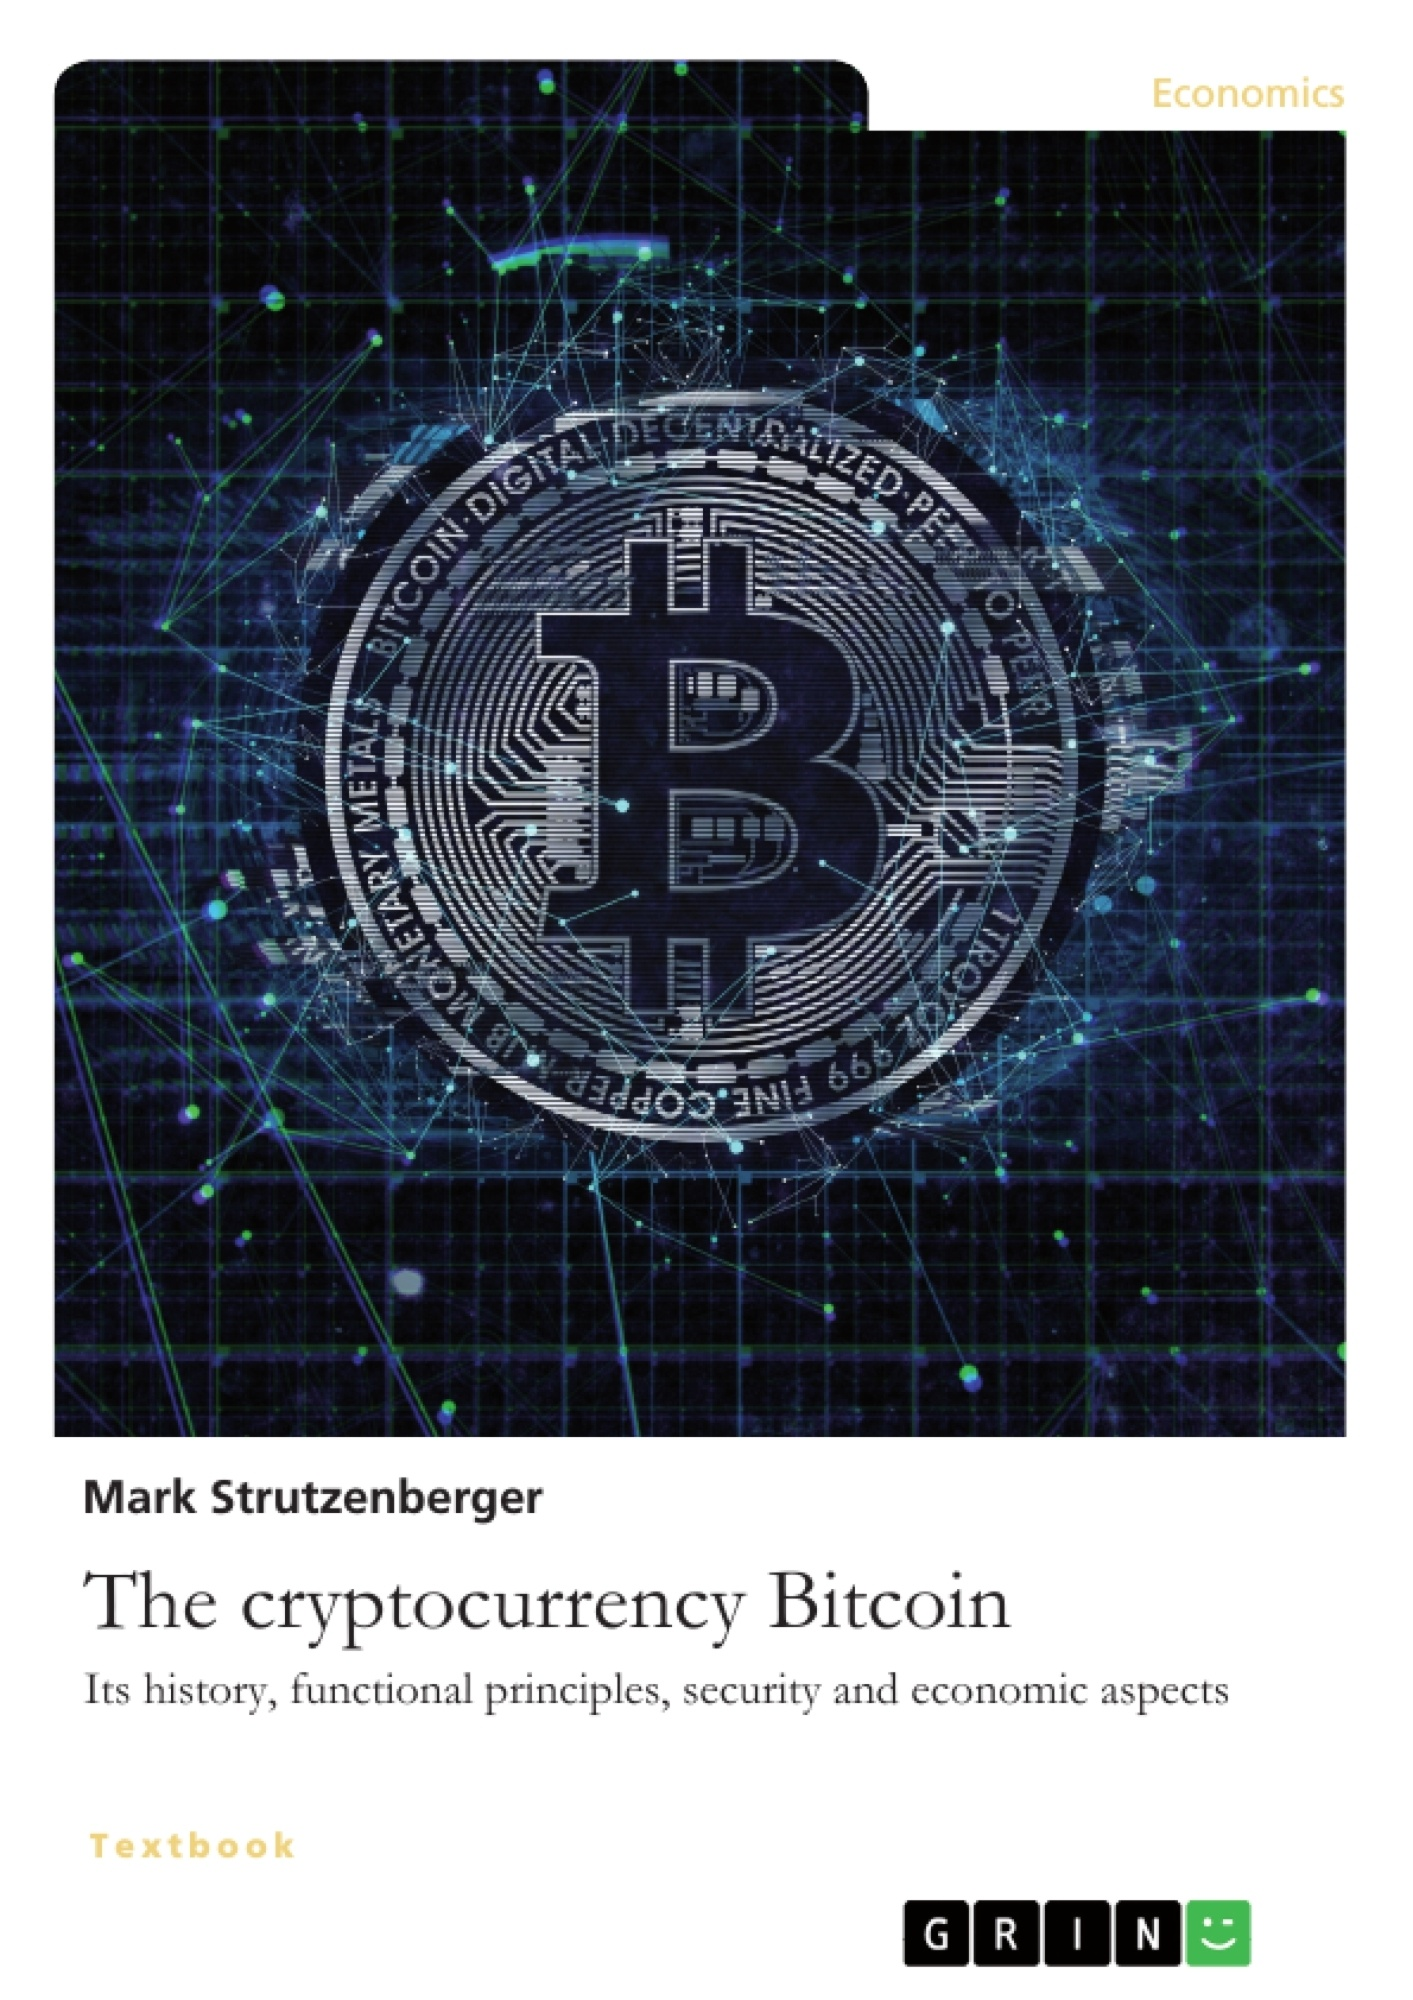 Title: The cryptocurrency Bitcoin. Its history, functional principles, security and economic aspects